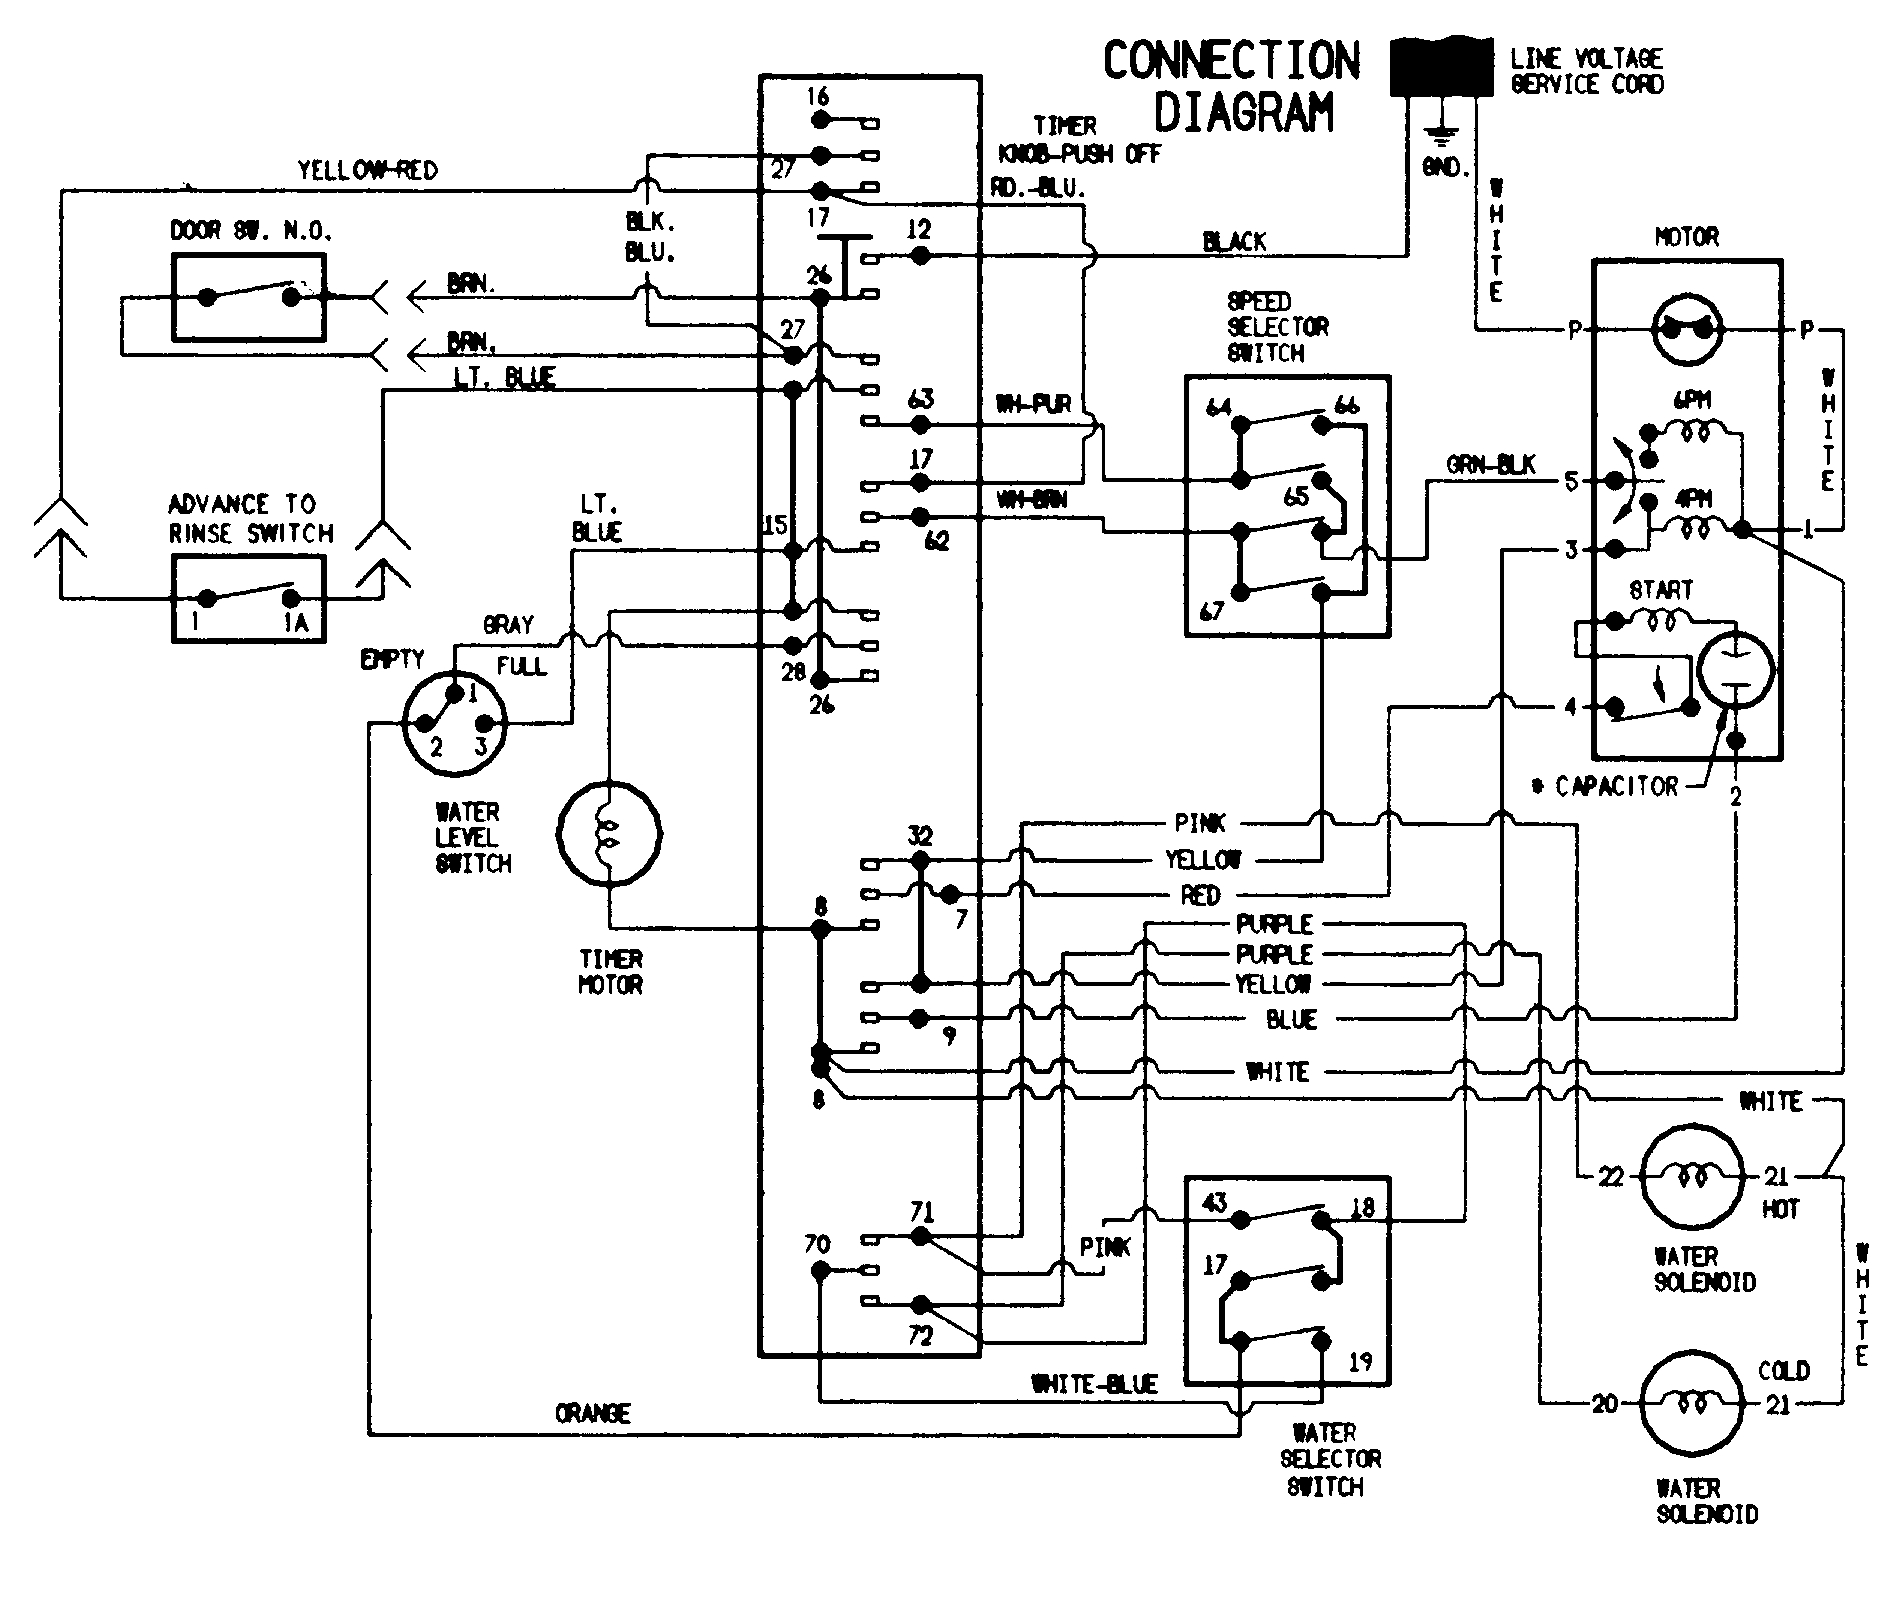 washing machine wiring diagram and schematics download